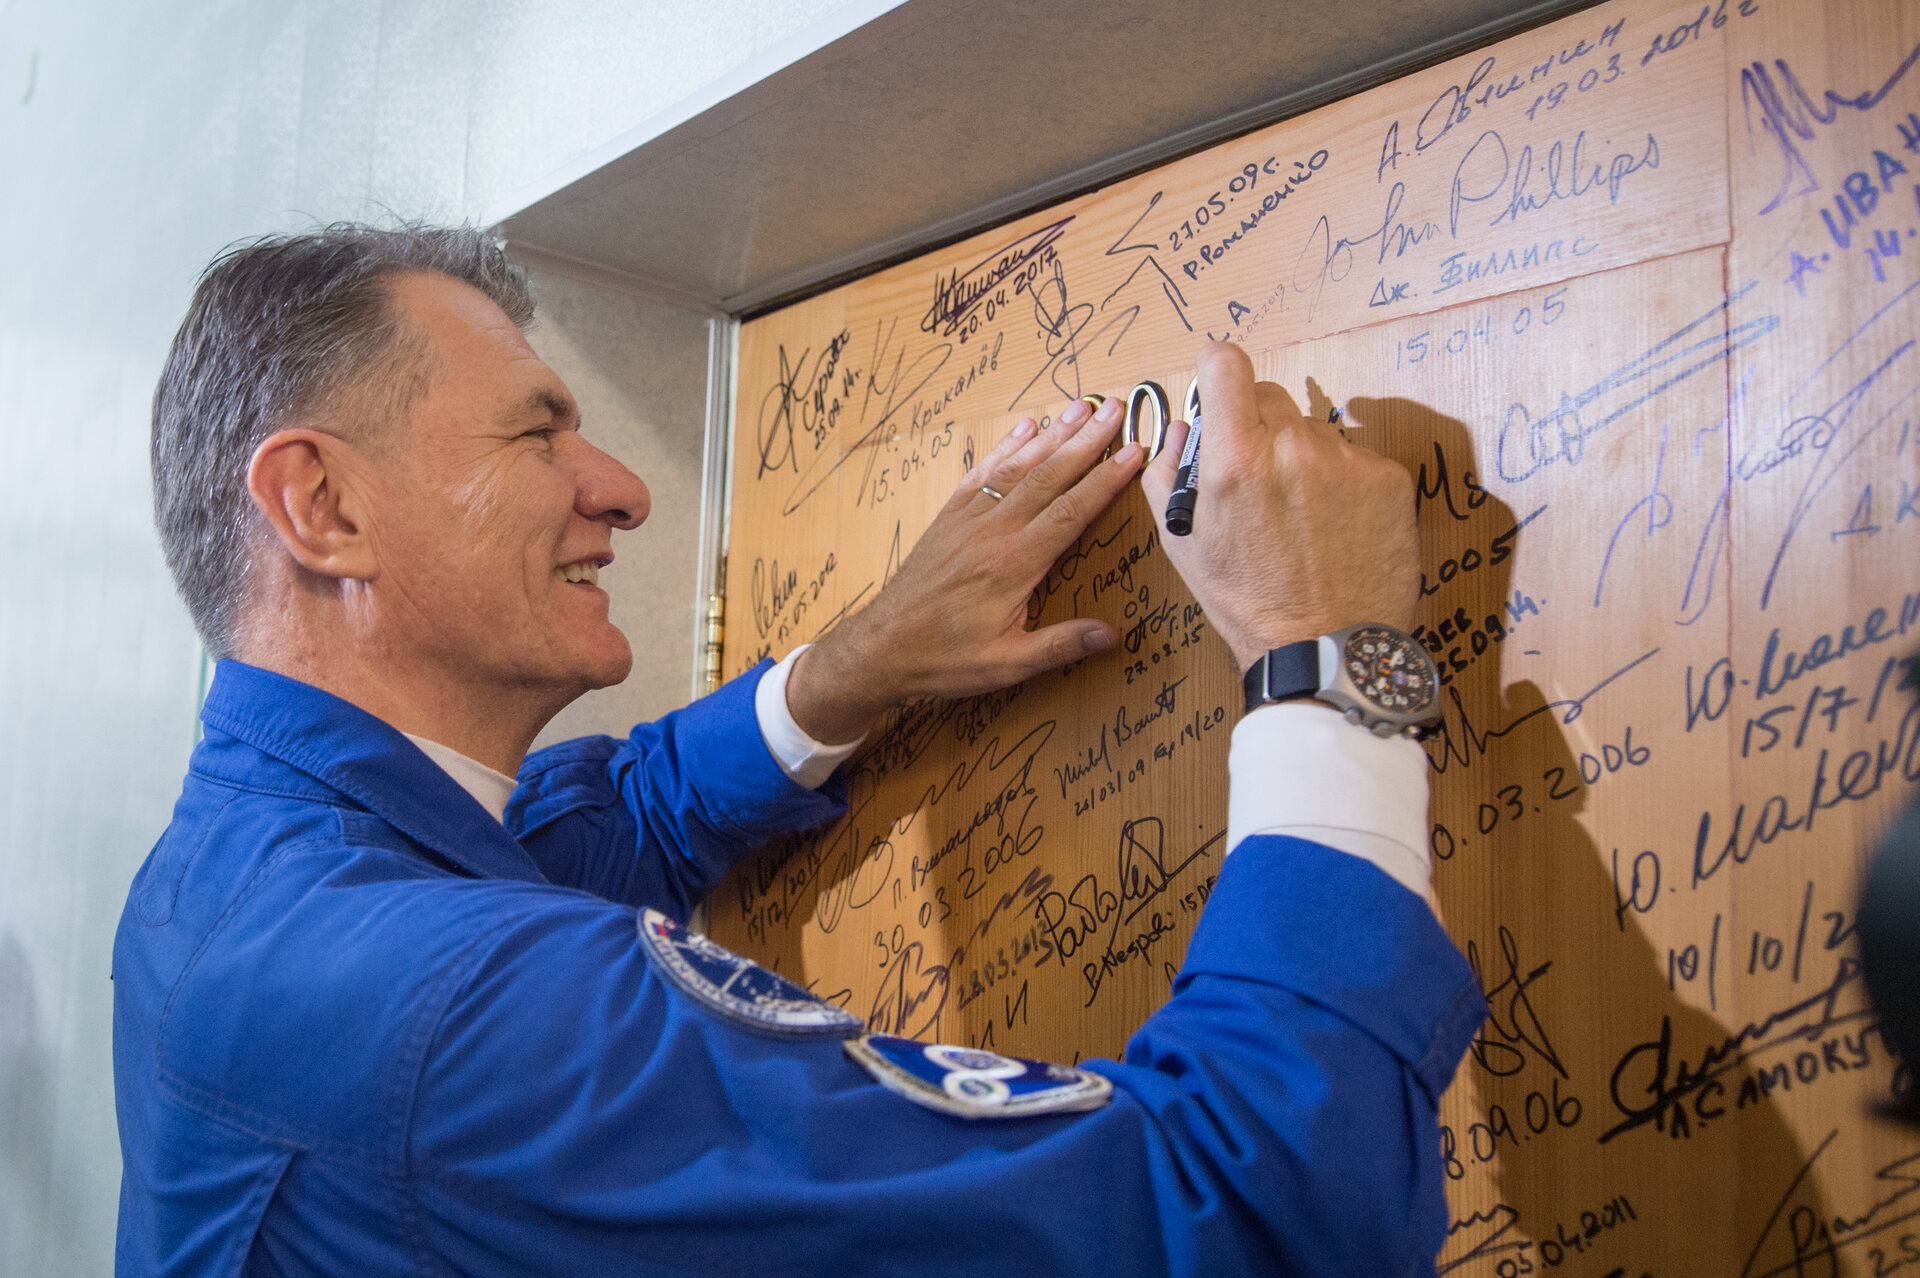 Paolo Nespoli performs the traditional door signing at the Cosmonaut Hotel